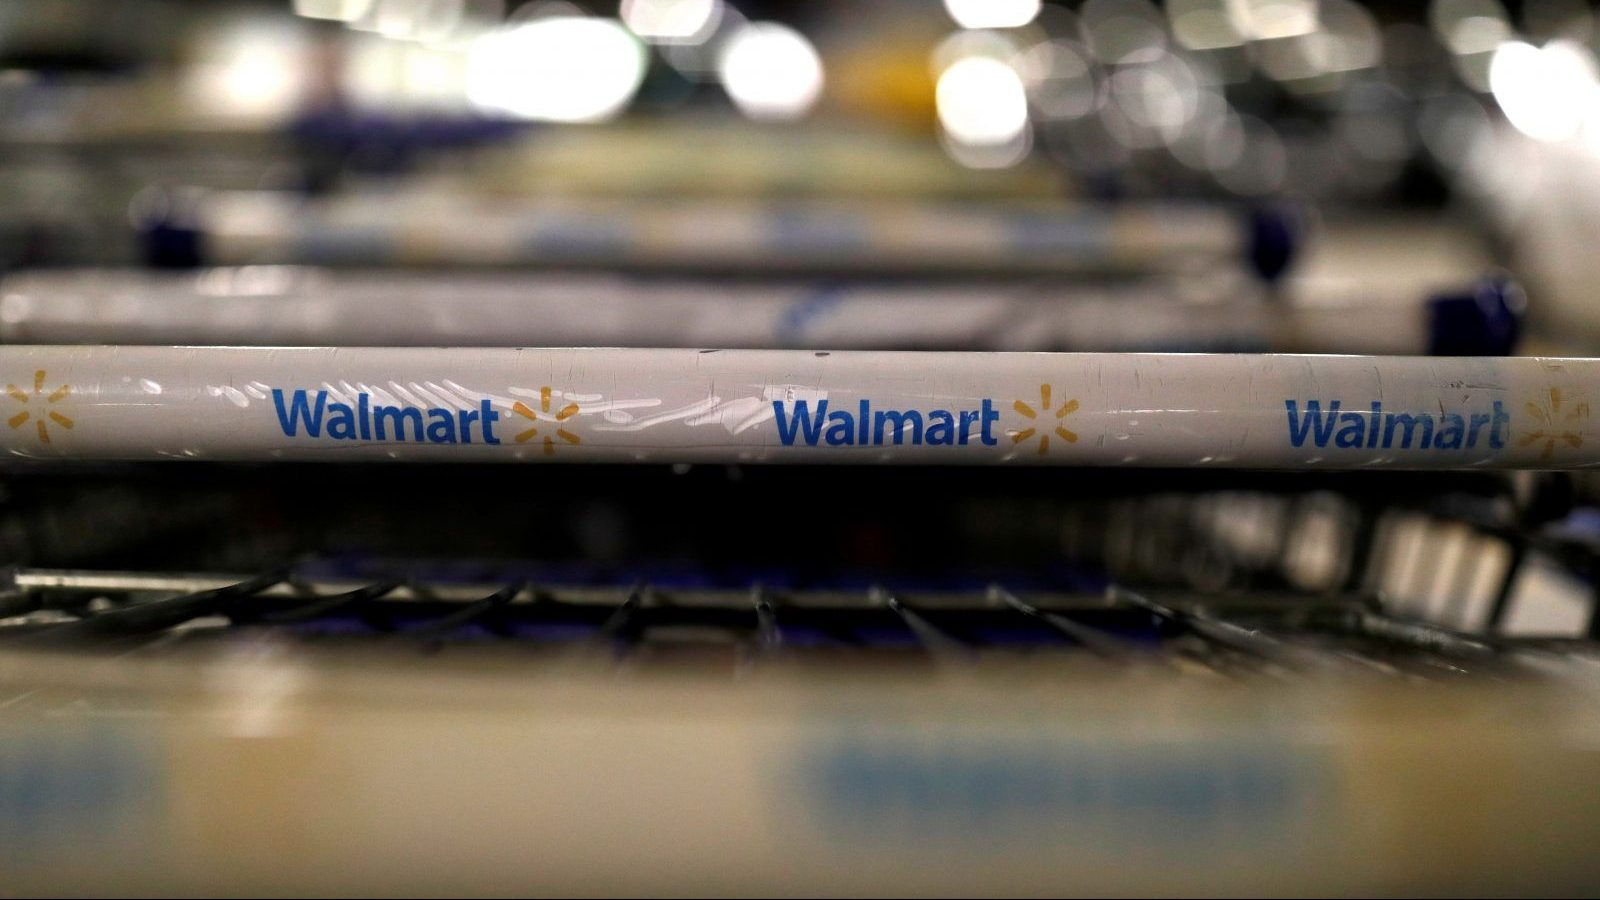 FILE PHOTO: The logo of Walmart is seen on shopping trolleys at their store in Sao Paulo, Brazil February 14, 2018. REUTERS/Paulo Whitaker/File Photo - RC1E9B0A6470